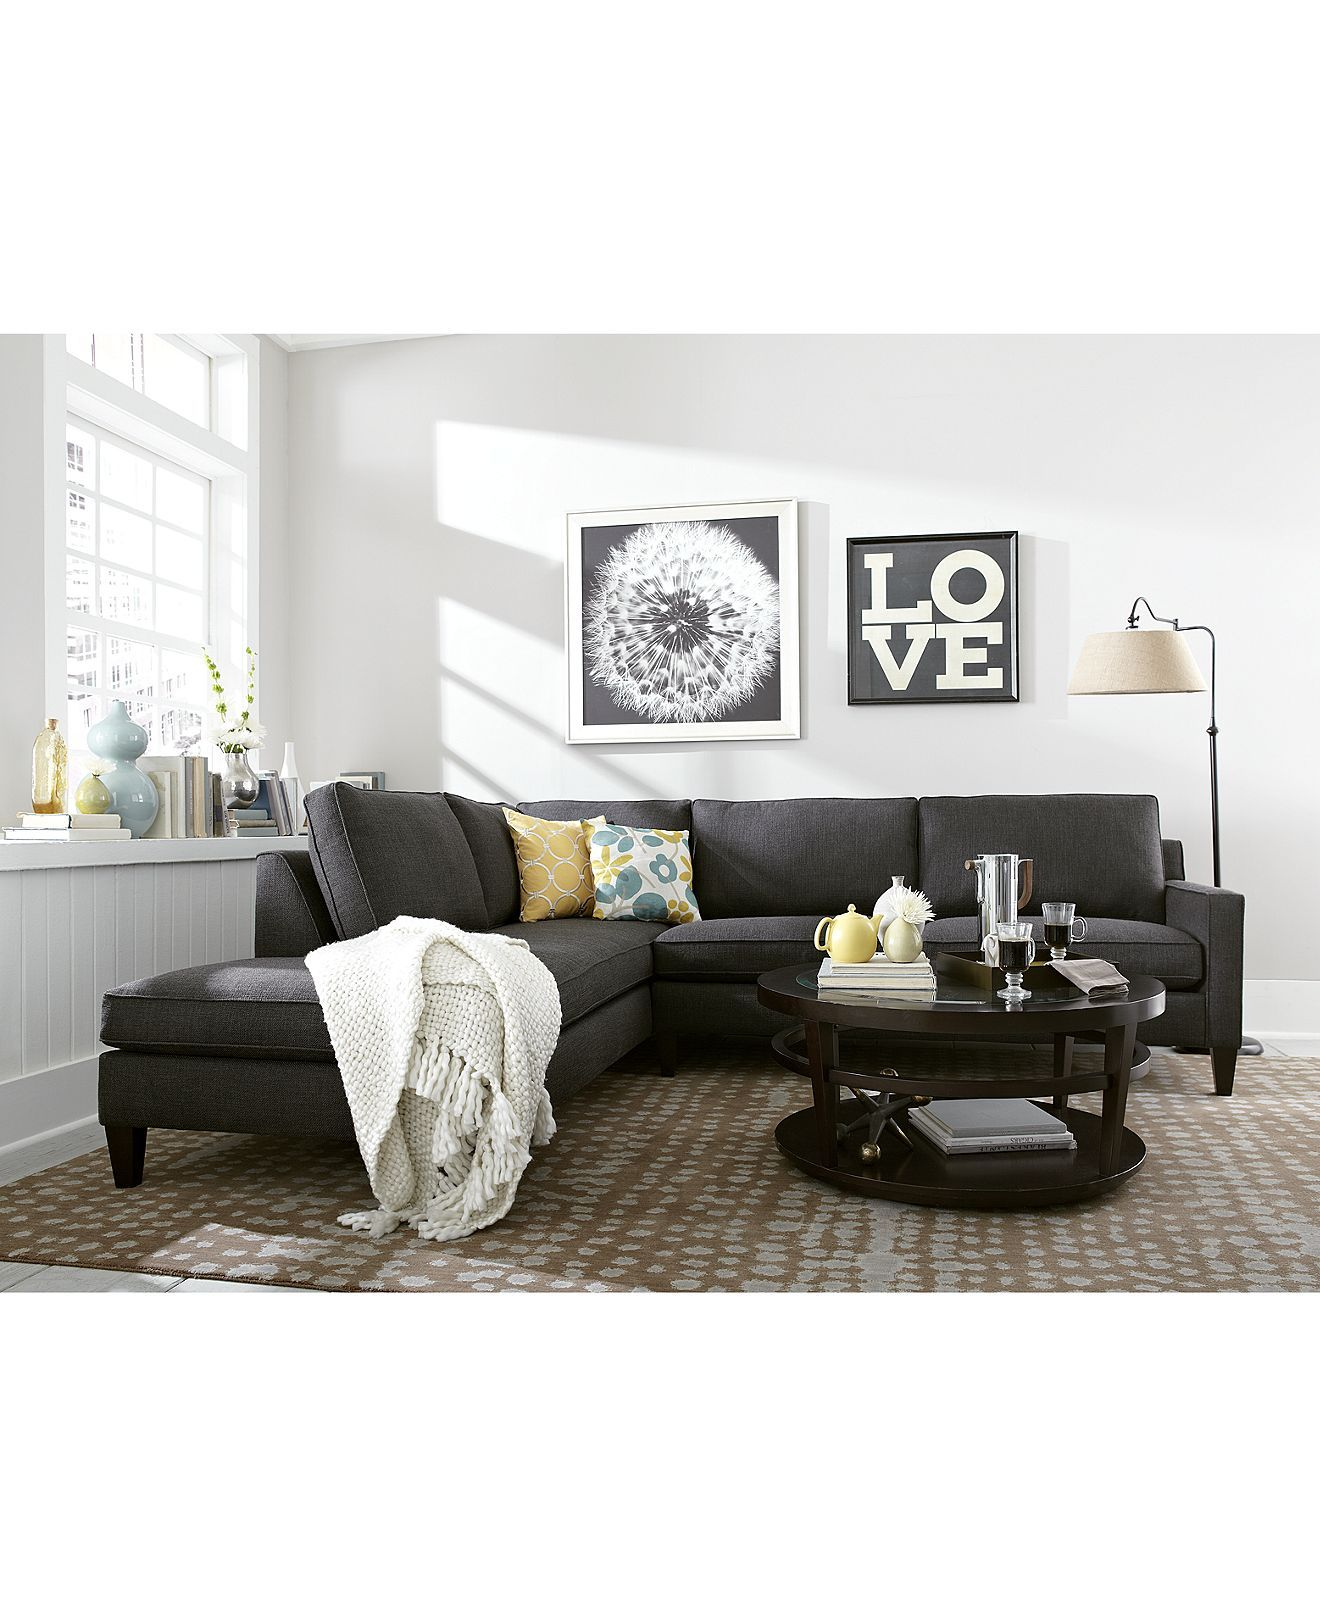 Alanis Fabric Sectional in Charcoal- Macys I like the b&w dandelion ...